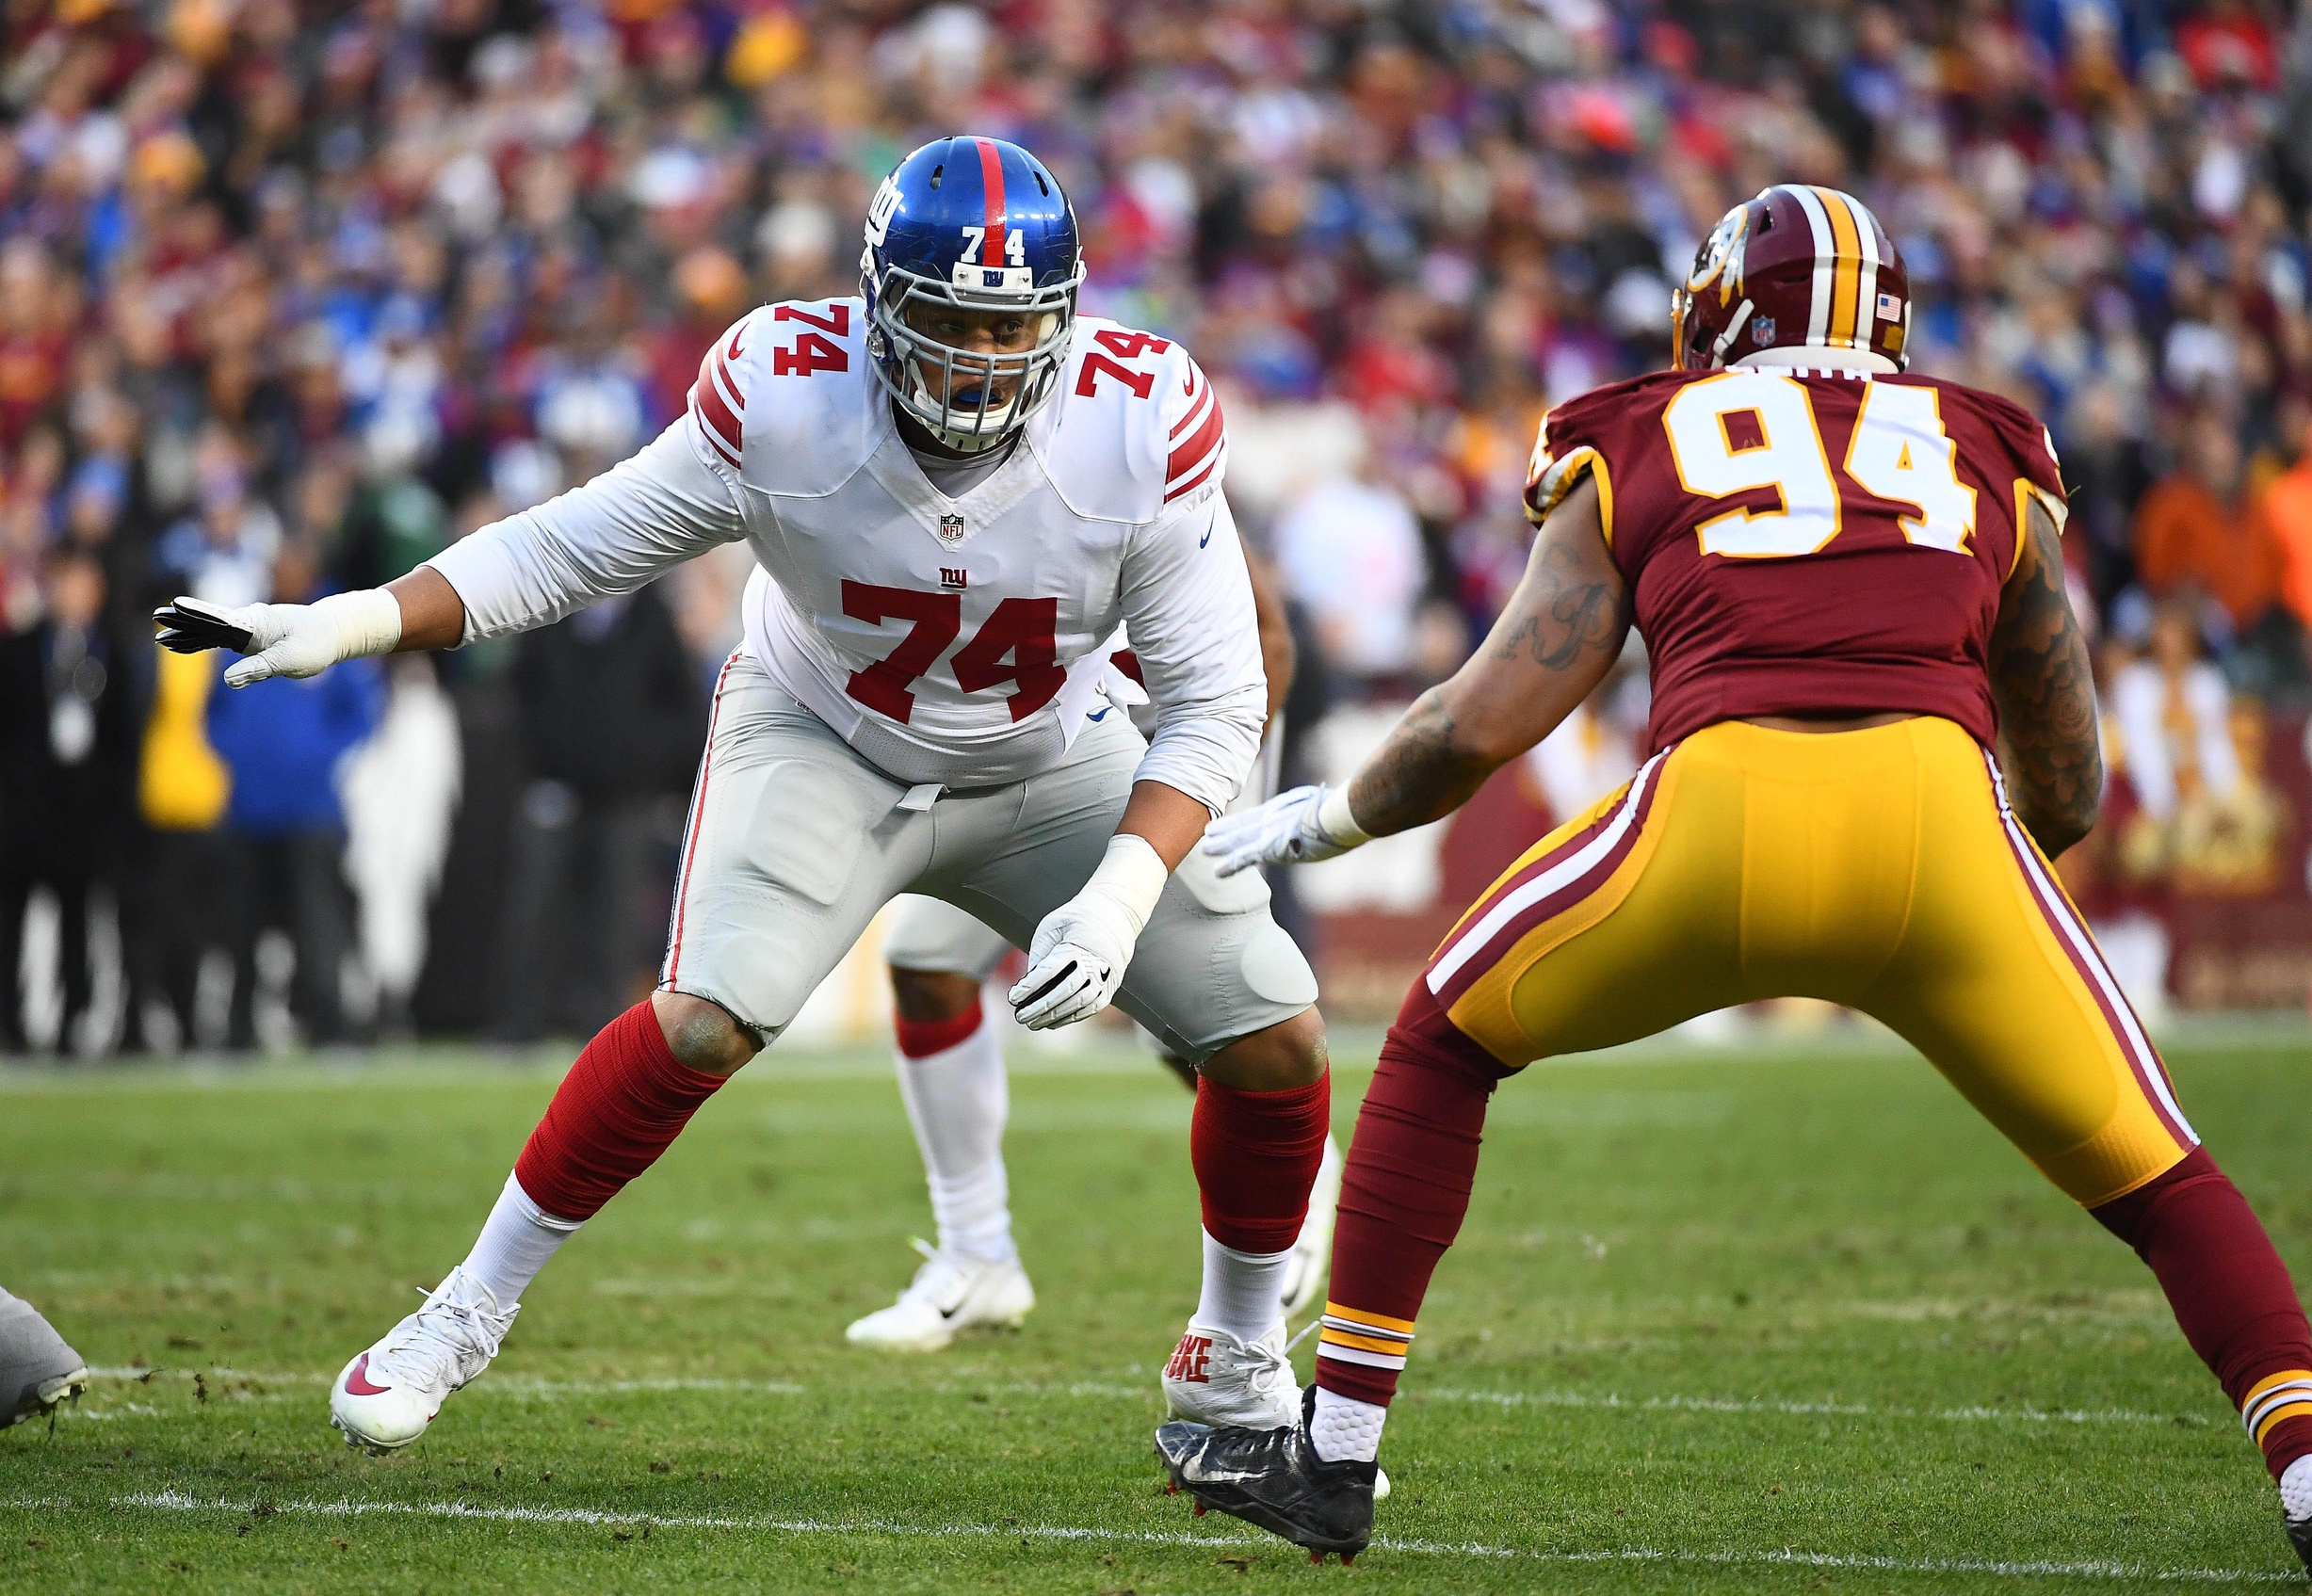 Giants expected to part ways with OT Ereck Flowers, report says